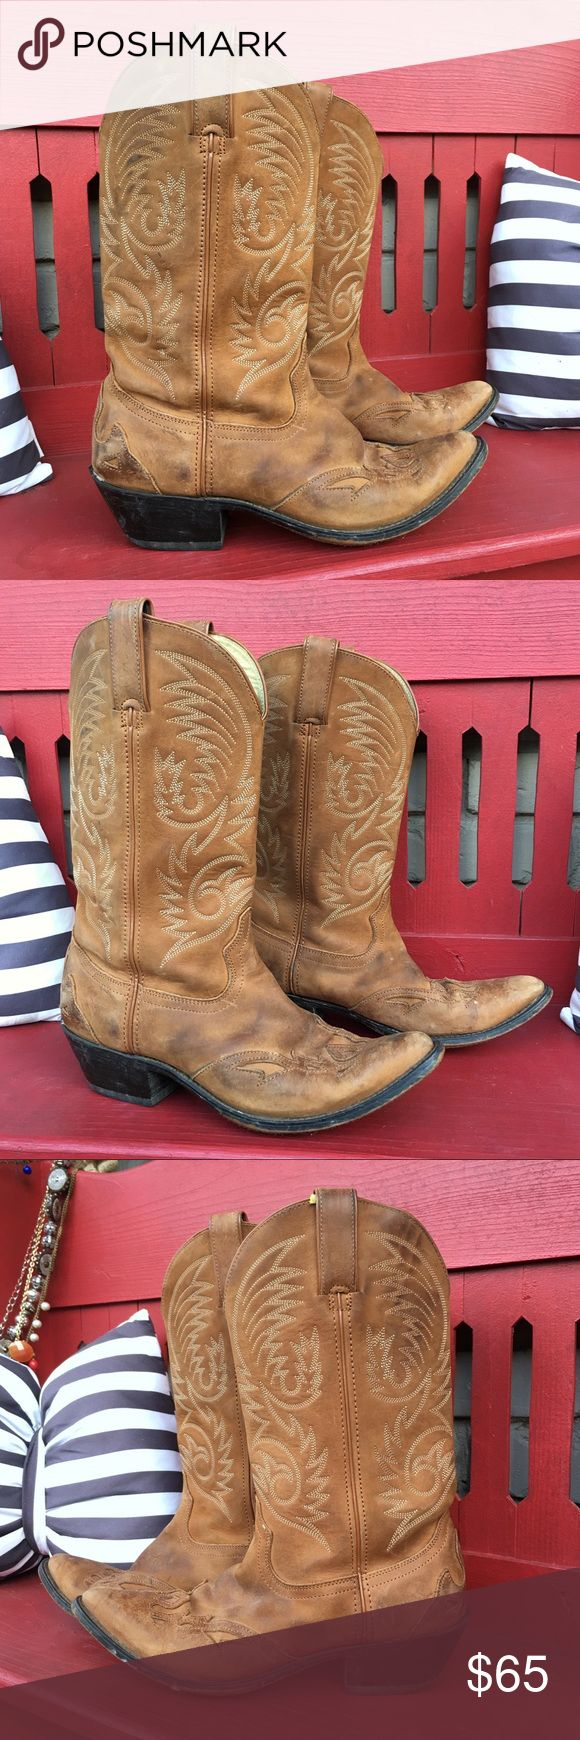 Vintage Durango camel tan leather cowboy boots Vintage leather Durango cowboy boots. PLEASE see all pics of spots and wear. Size 8.5. Look great with jeans and dresses! Durango Shoes